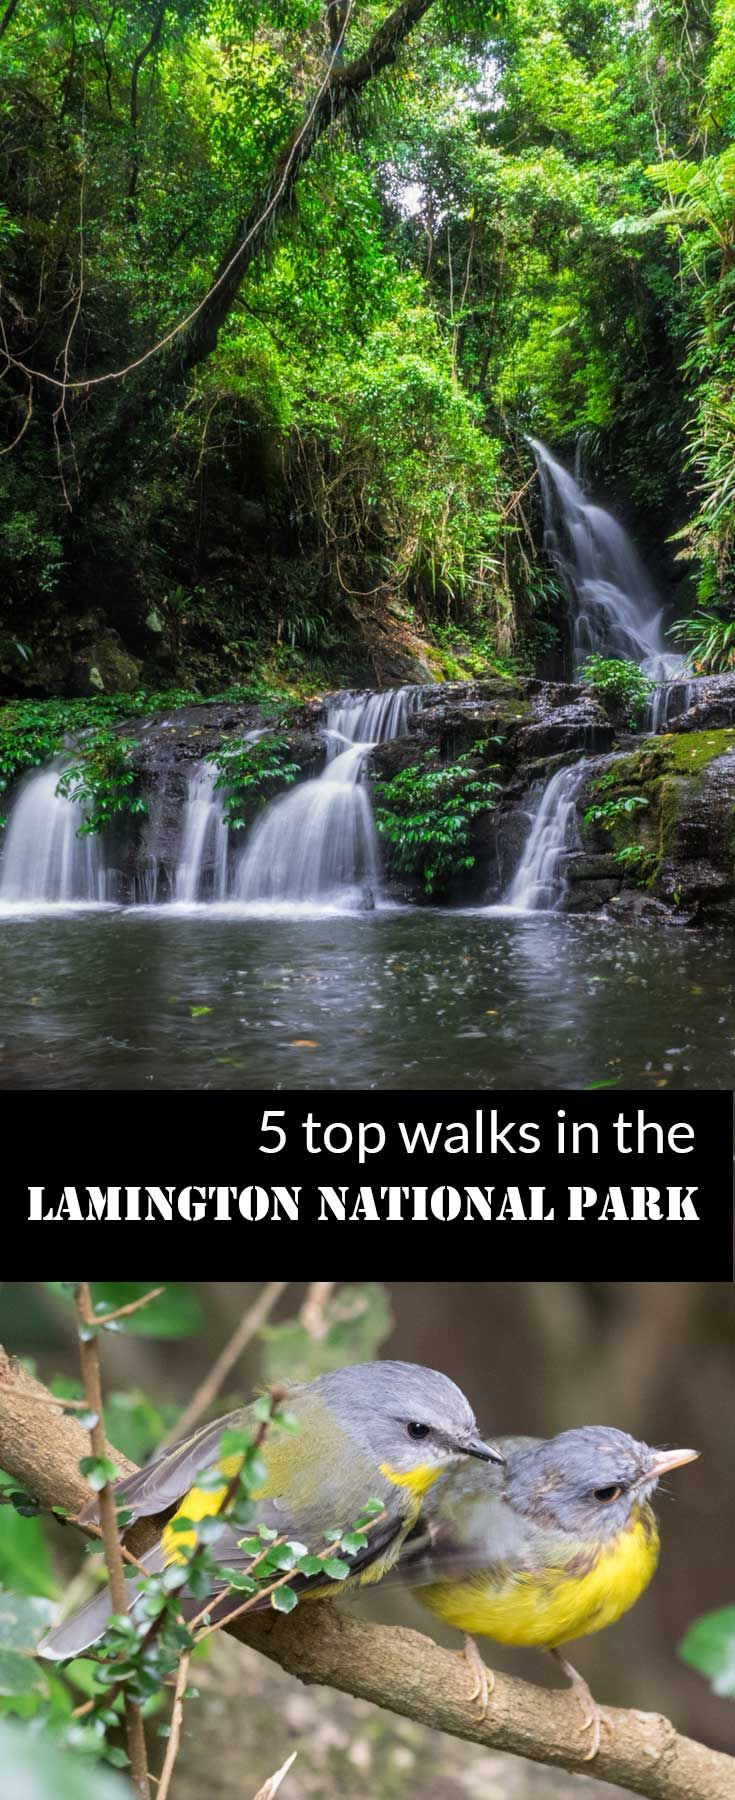 Lamington National Park, Queensland Australia. Part of the largest tract of sub tropical rainforest in the world